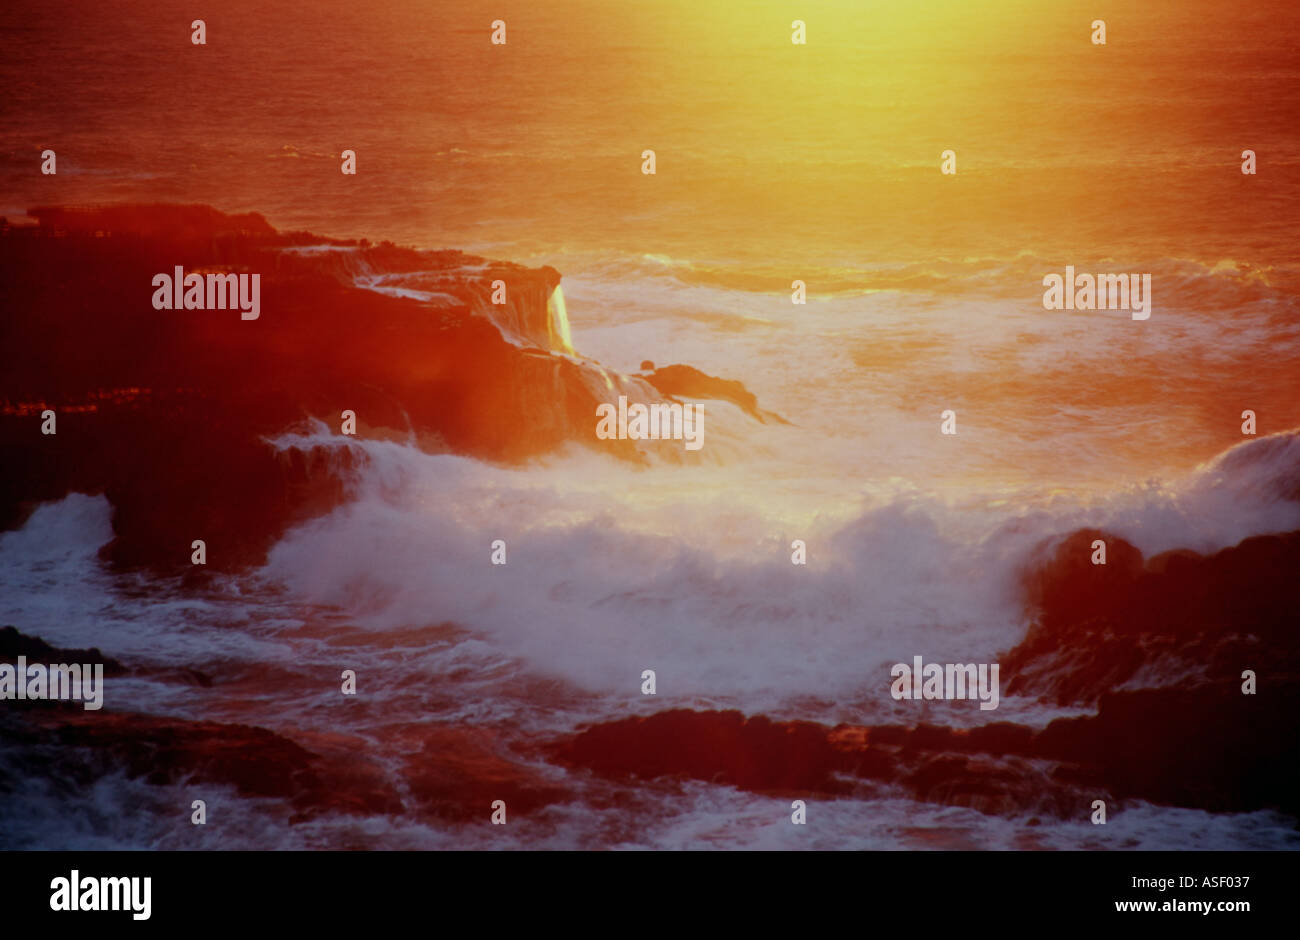 Waves breaking on rocky shoreline at sunset Piha New Zealand - Stock Image